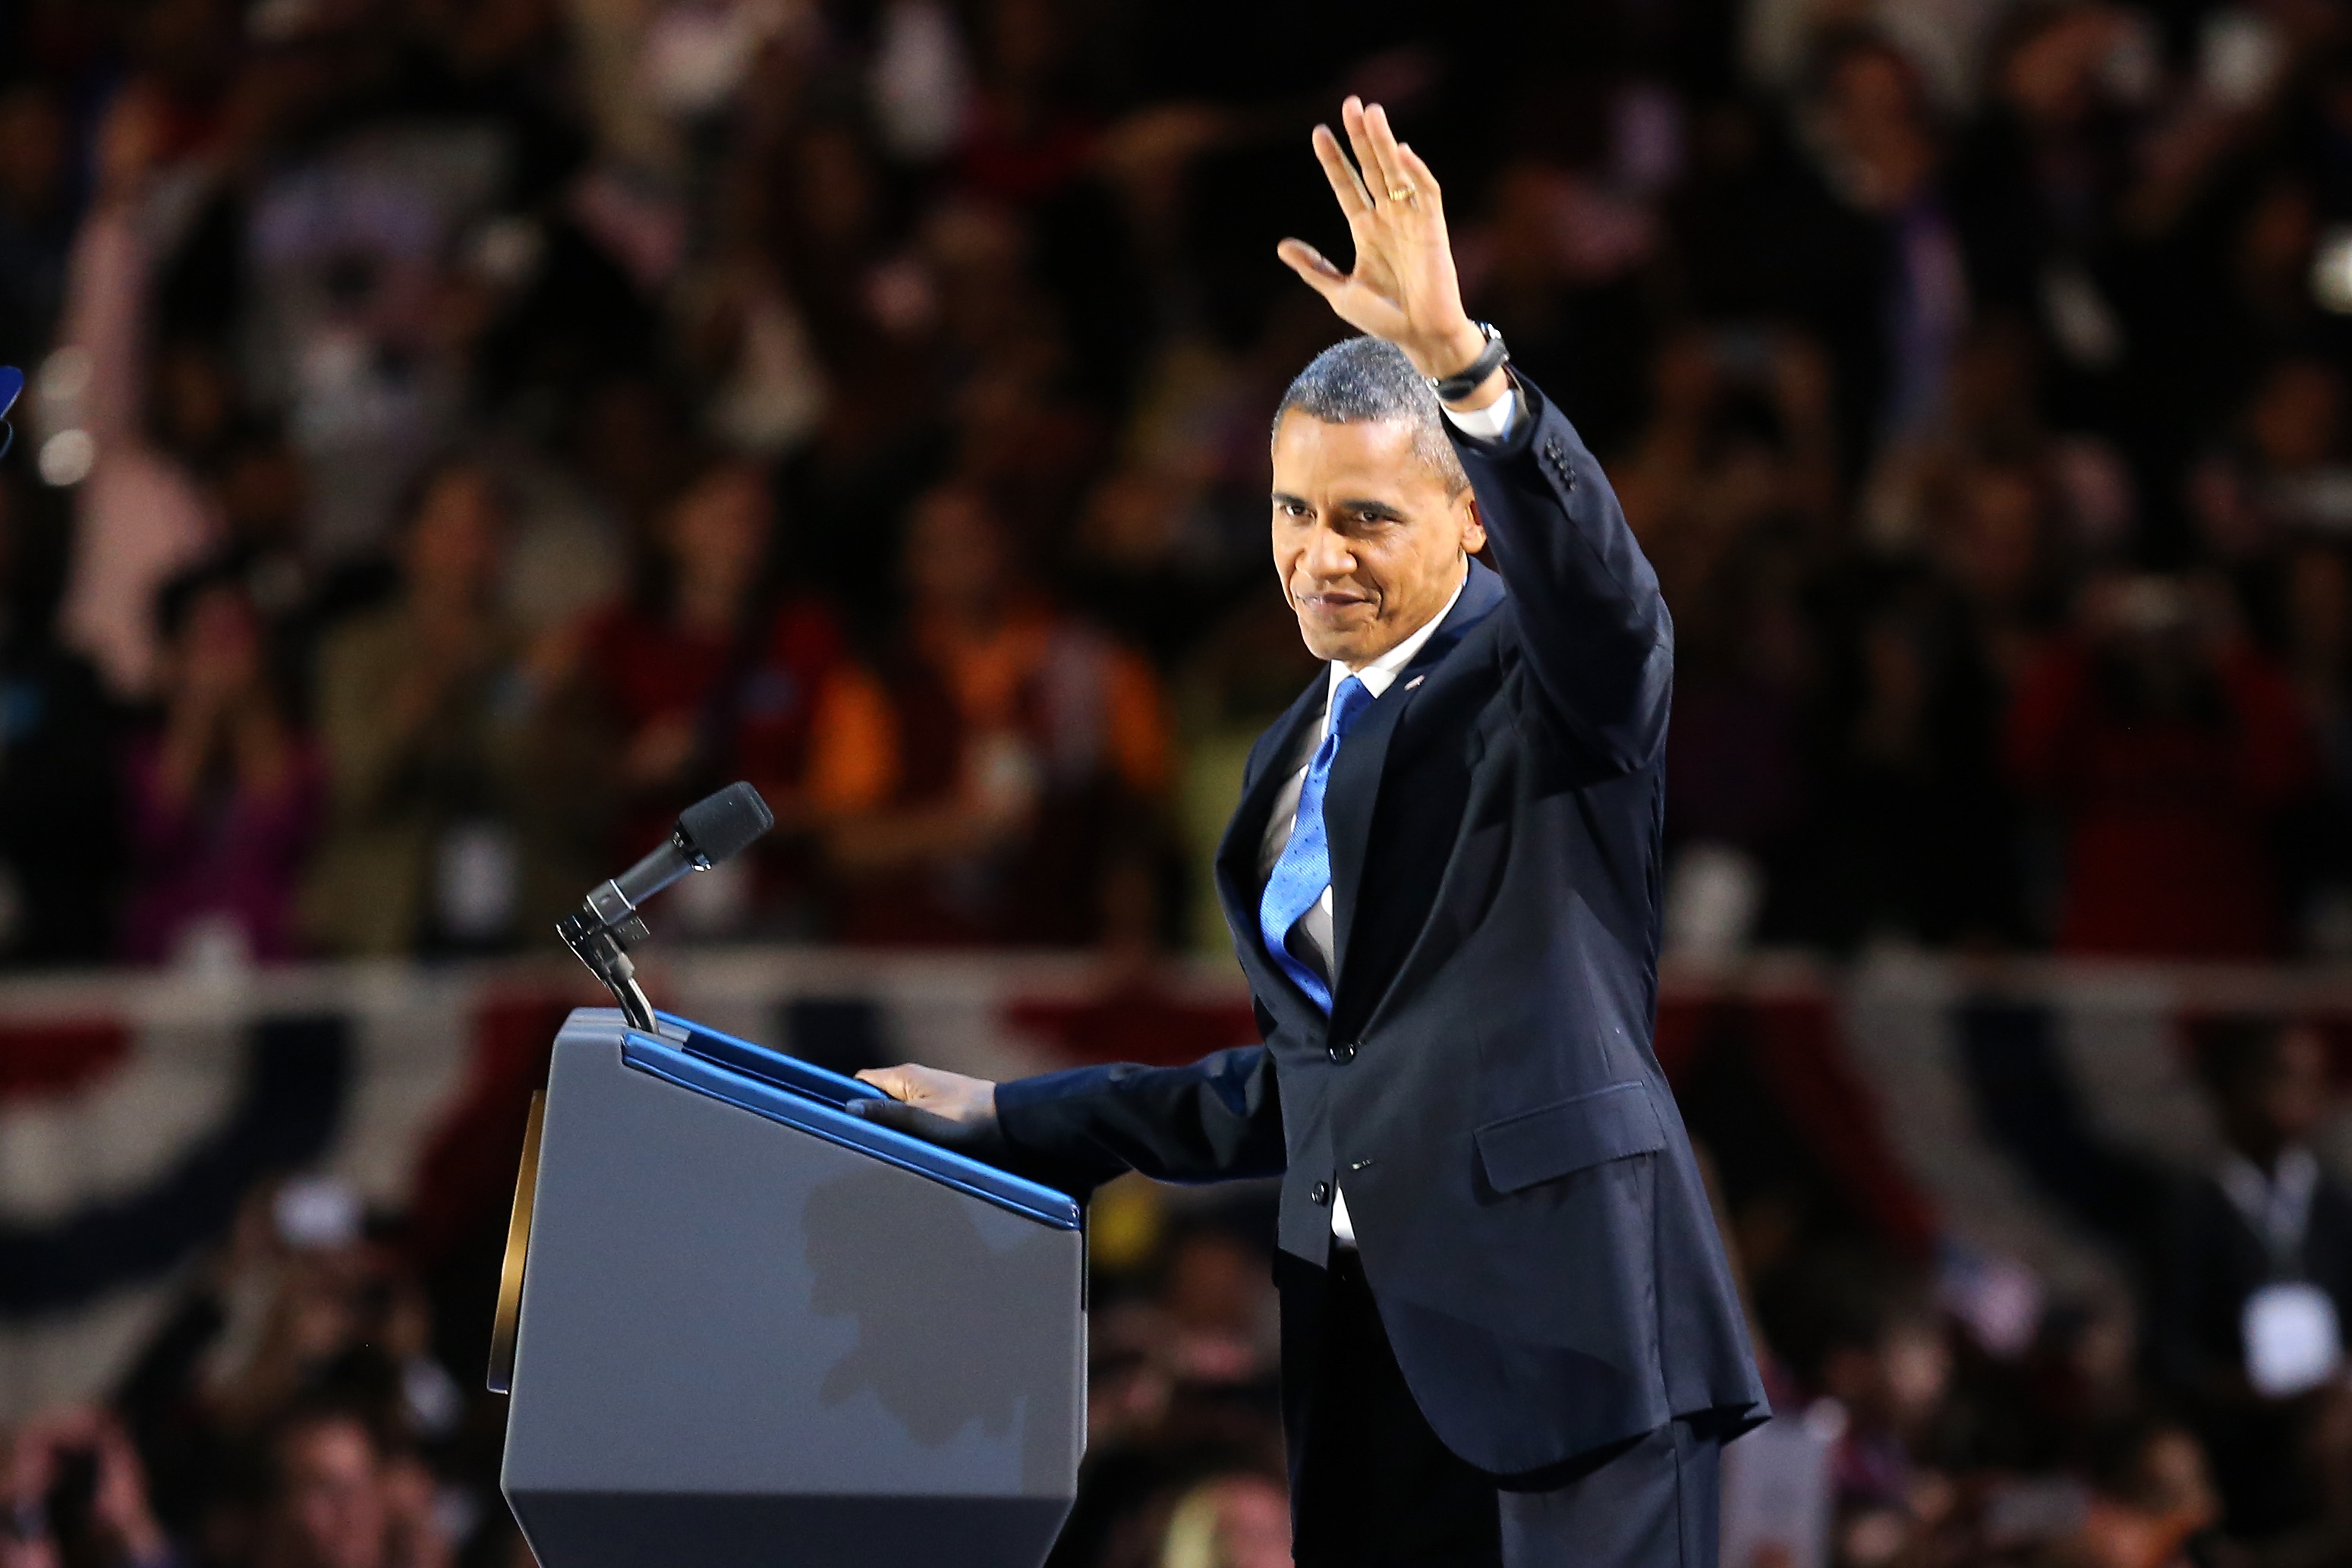 """Barack Obama May Celebrate Re-election With PSY's """"Gangnam Style"""" Dance: Morning Mix"""